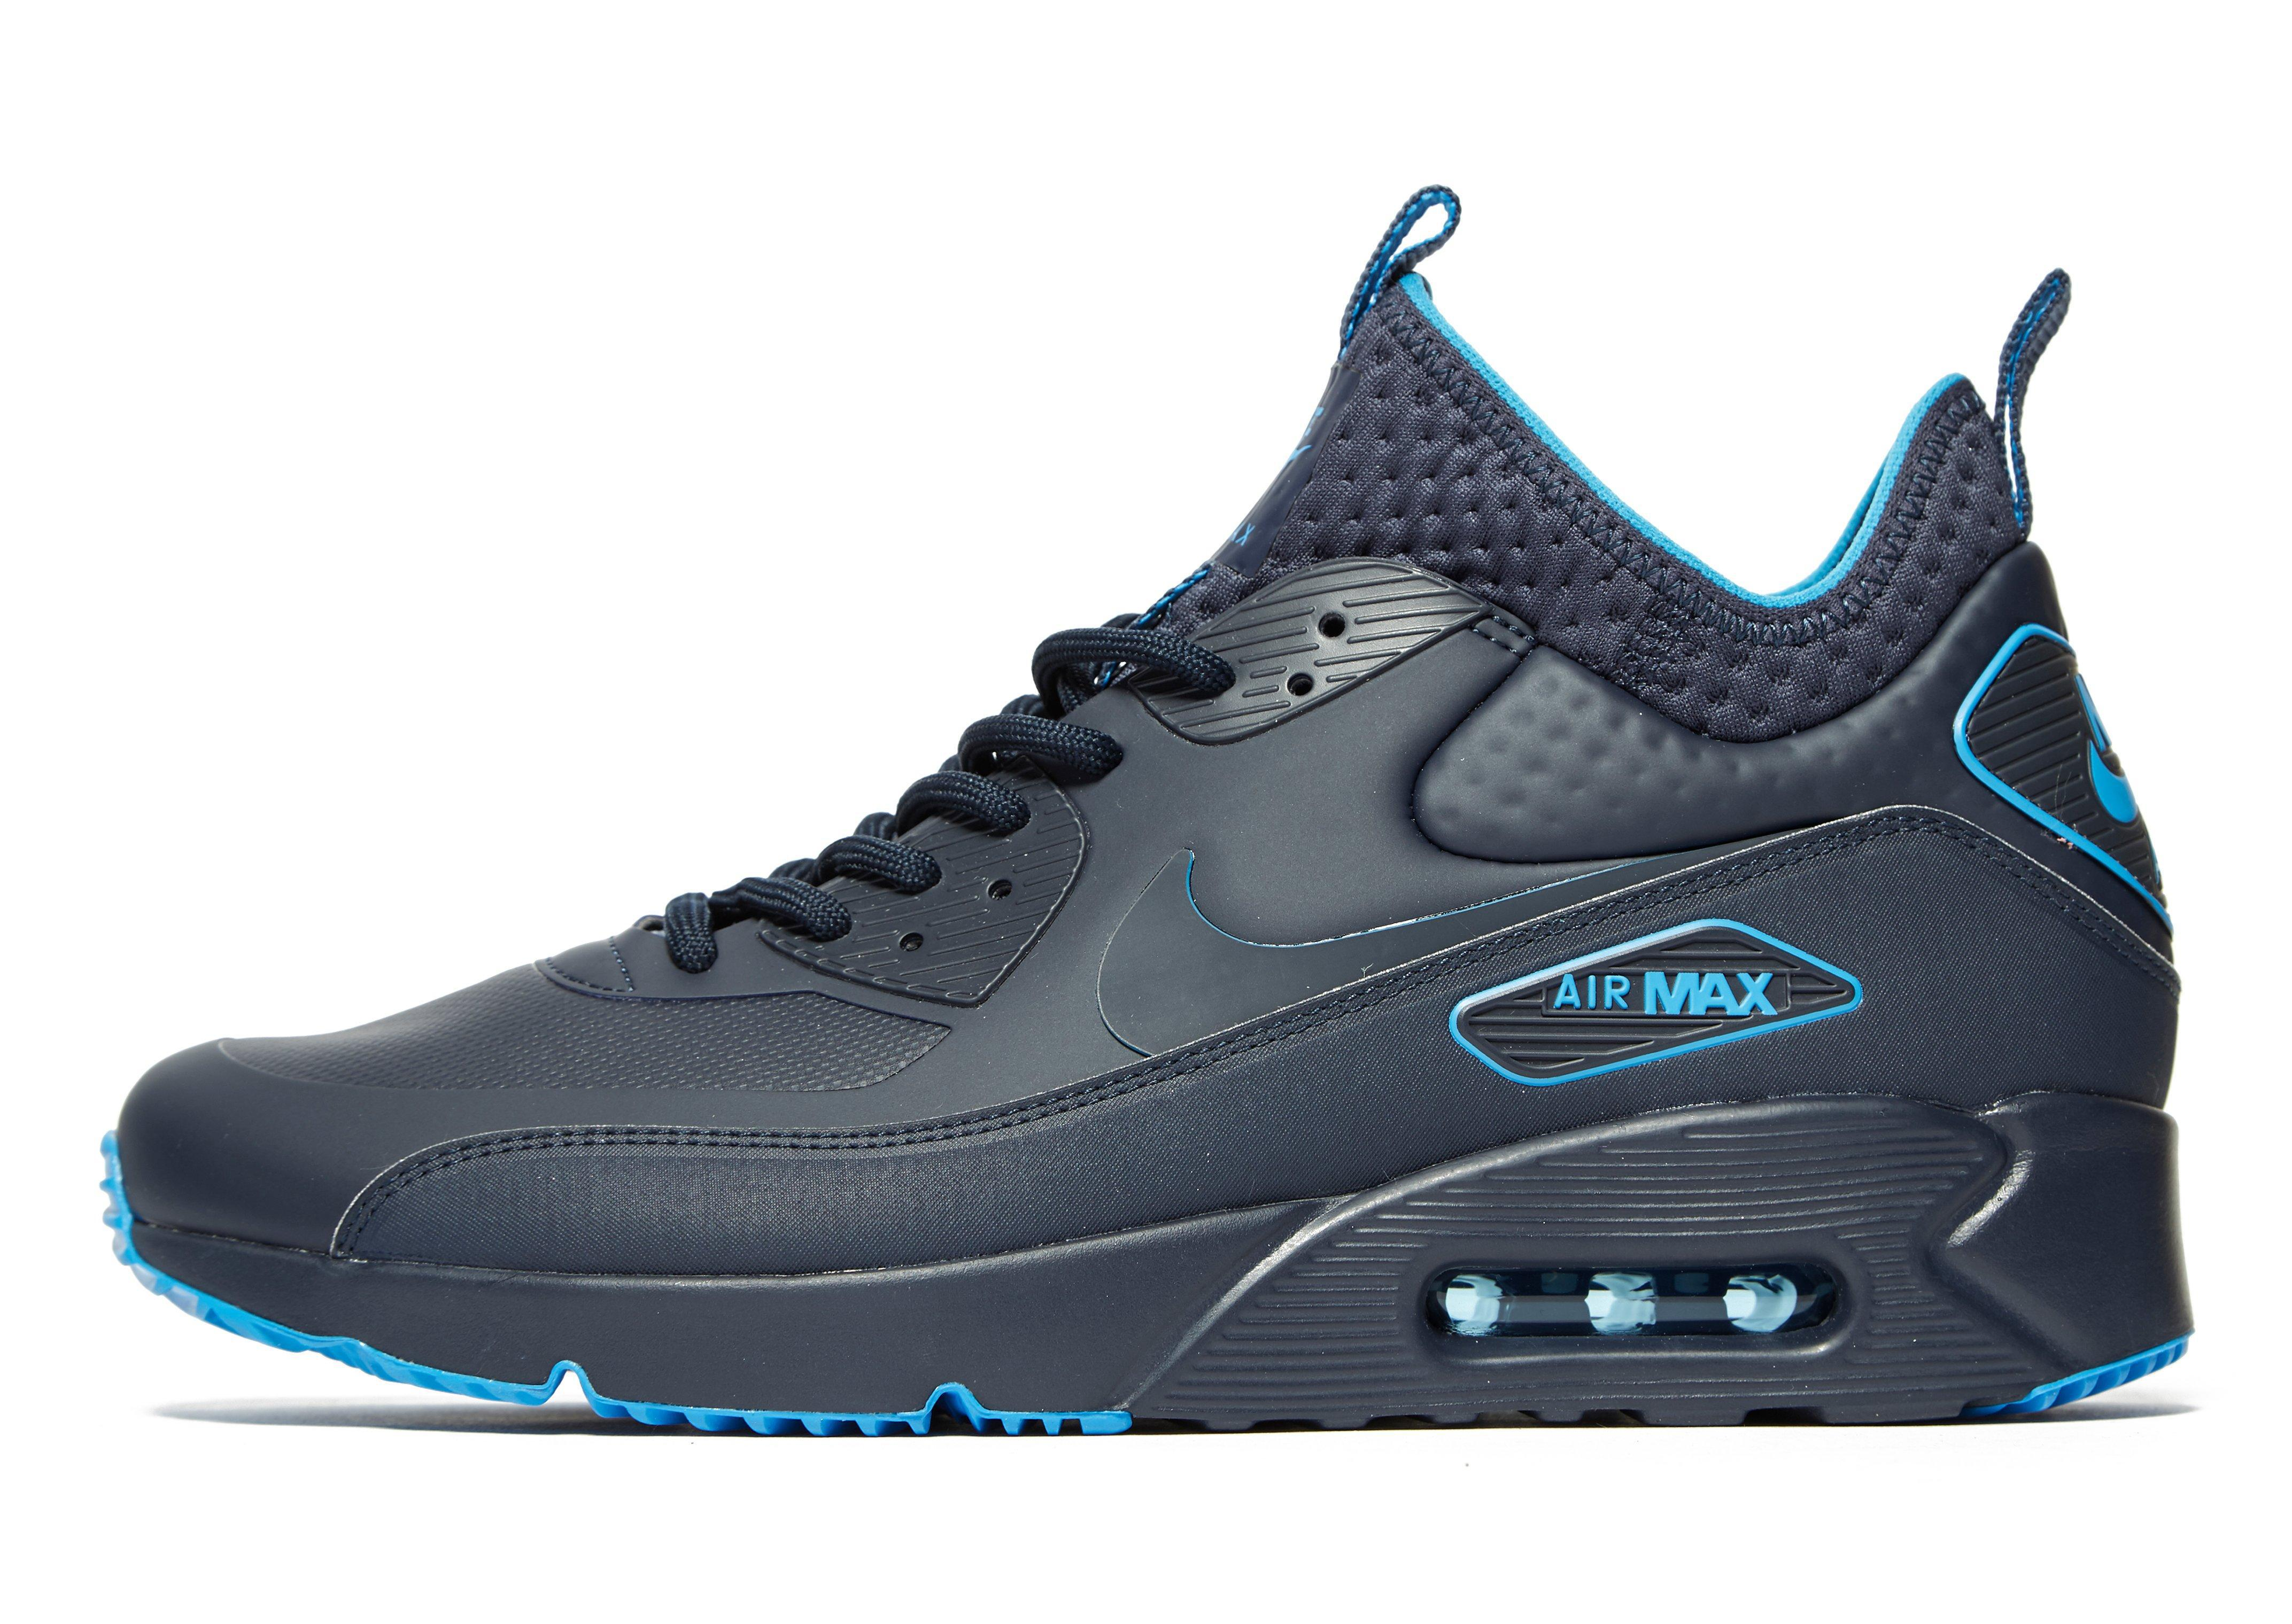 92ec5c81a10aa Lyst - Nike Air Max 90 Ultra Mid Winter Se in Blue for Men